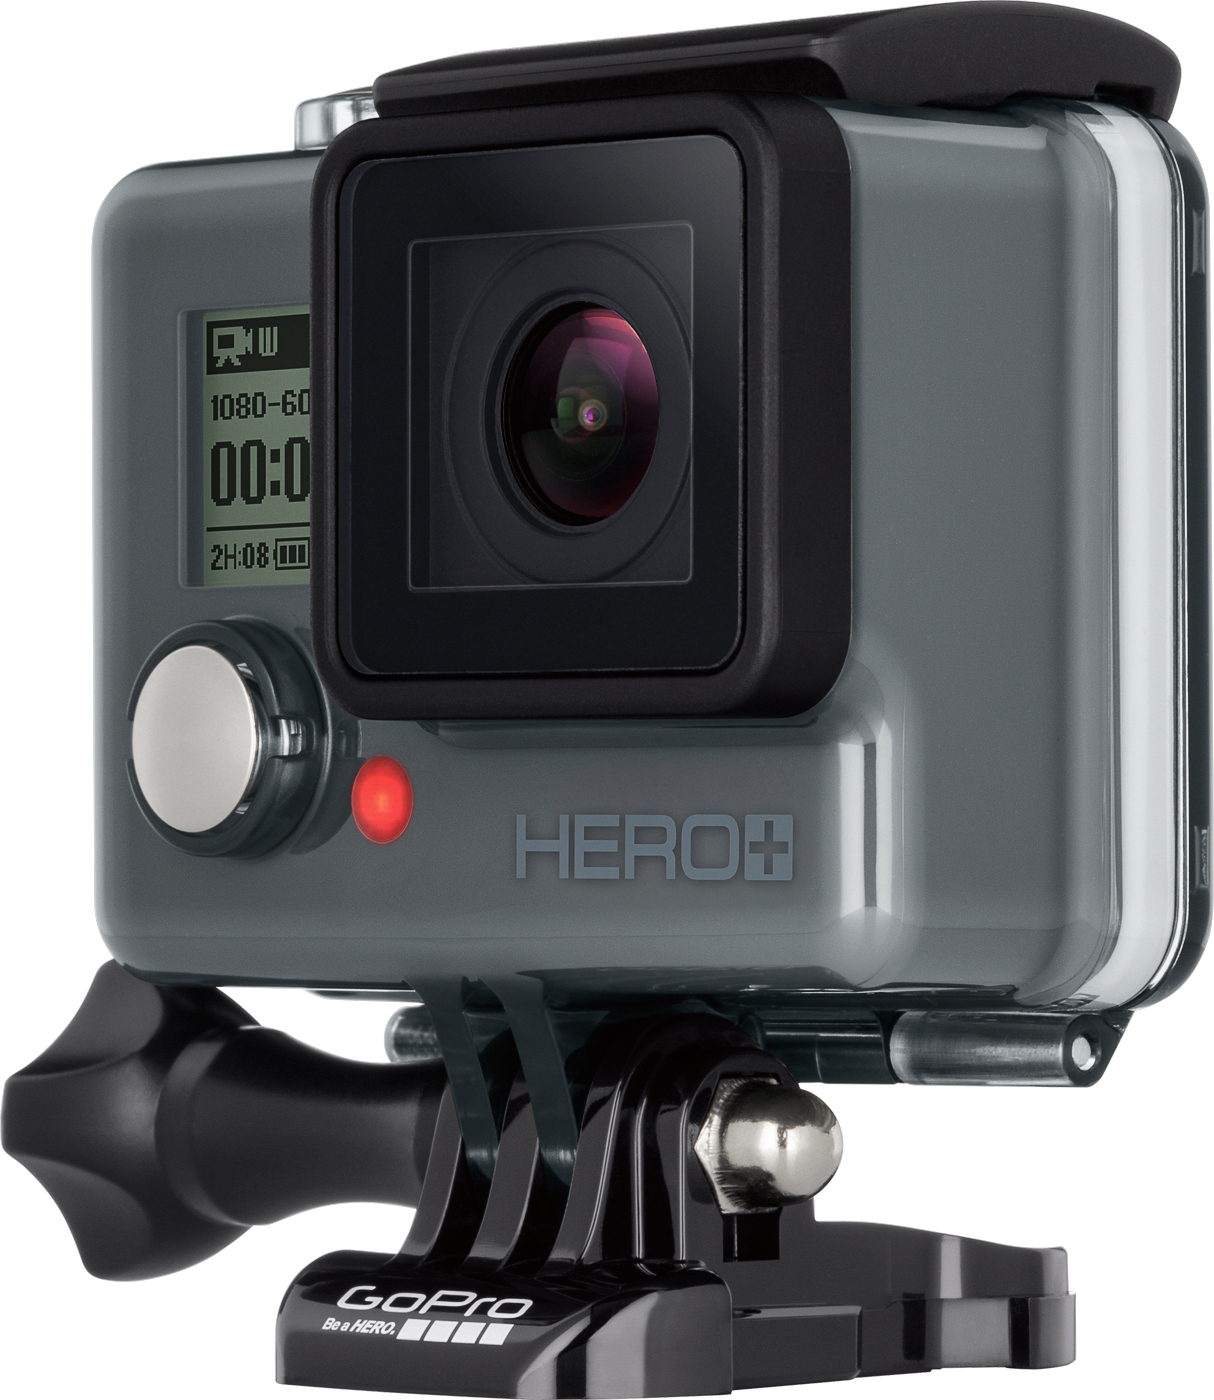 GoPro HERO+LCD available at Best Buy  GoPro HERO+ LCD Launch at Best Buy Plus Special Offers  #GoProatBestBuy  @GoPro  @BestBuy ad